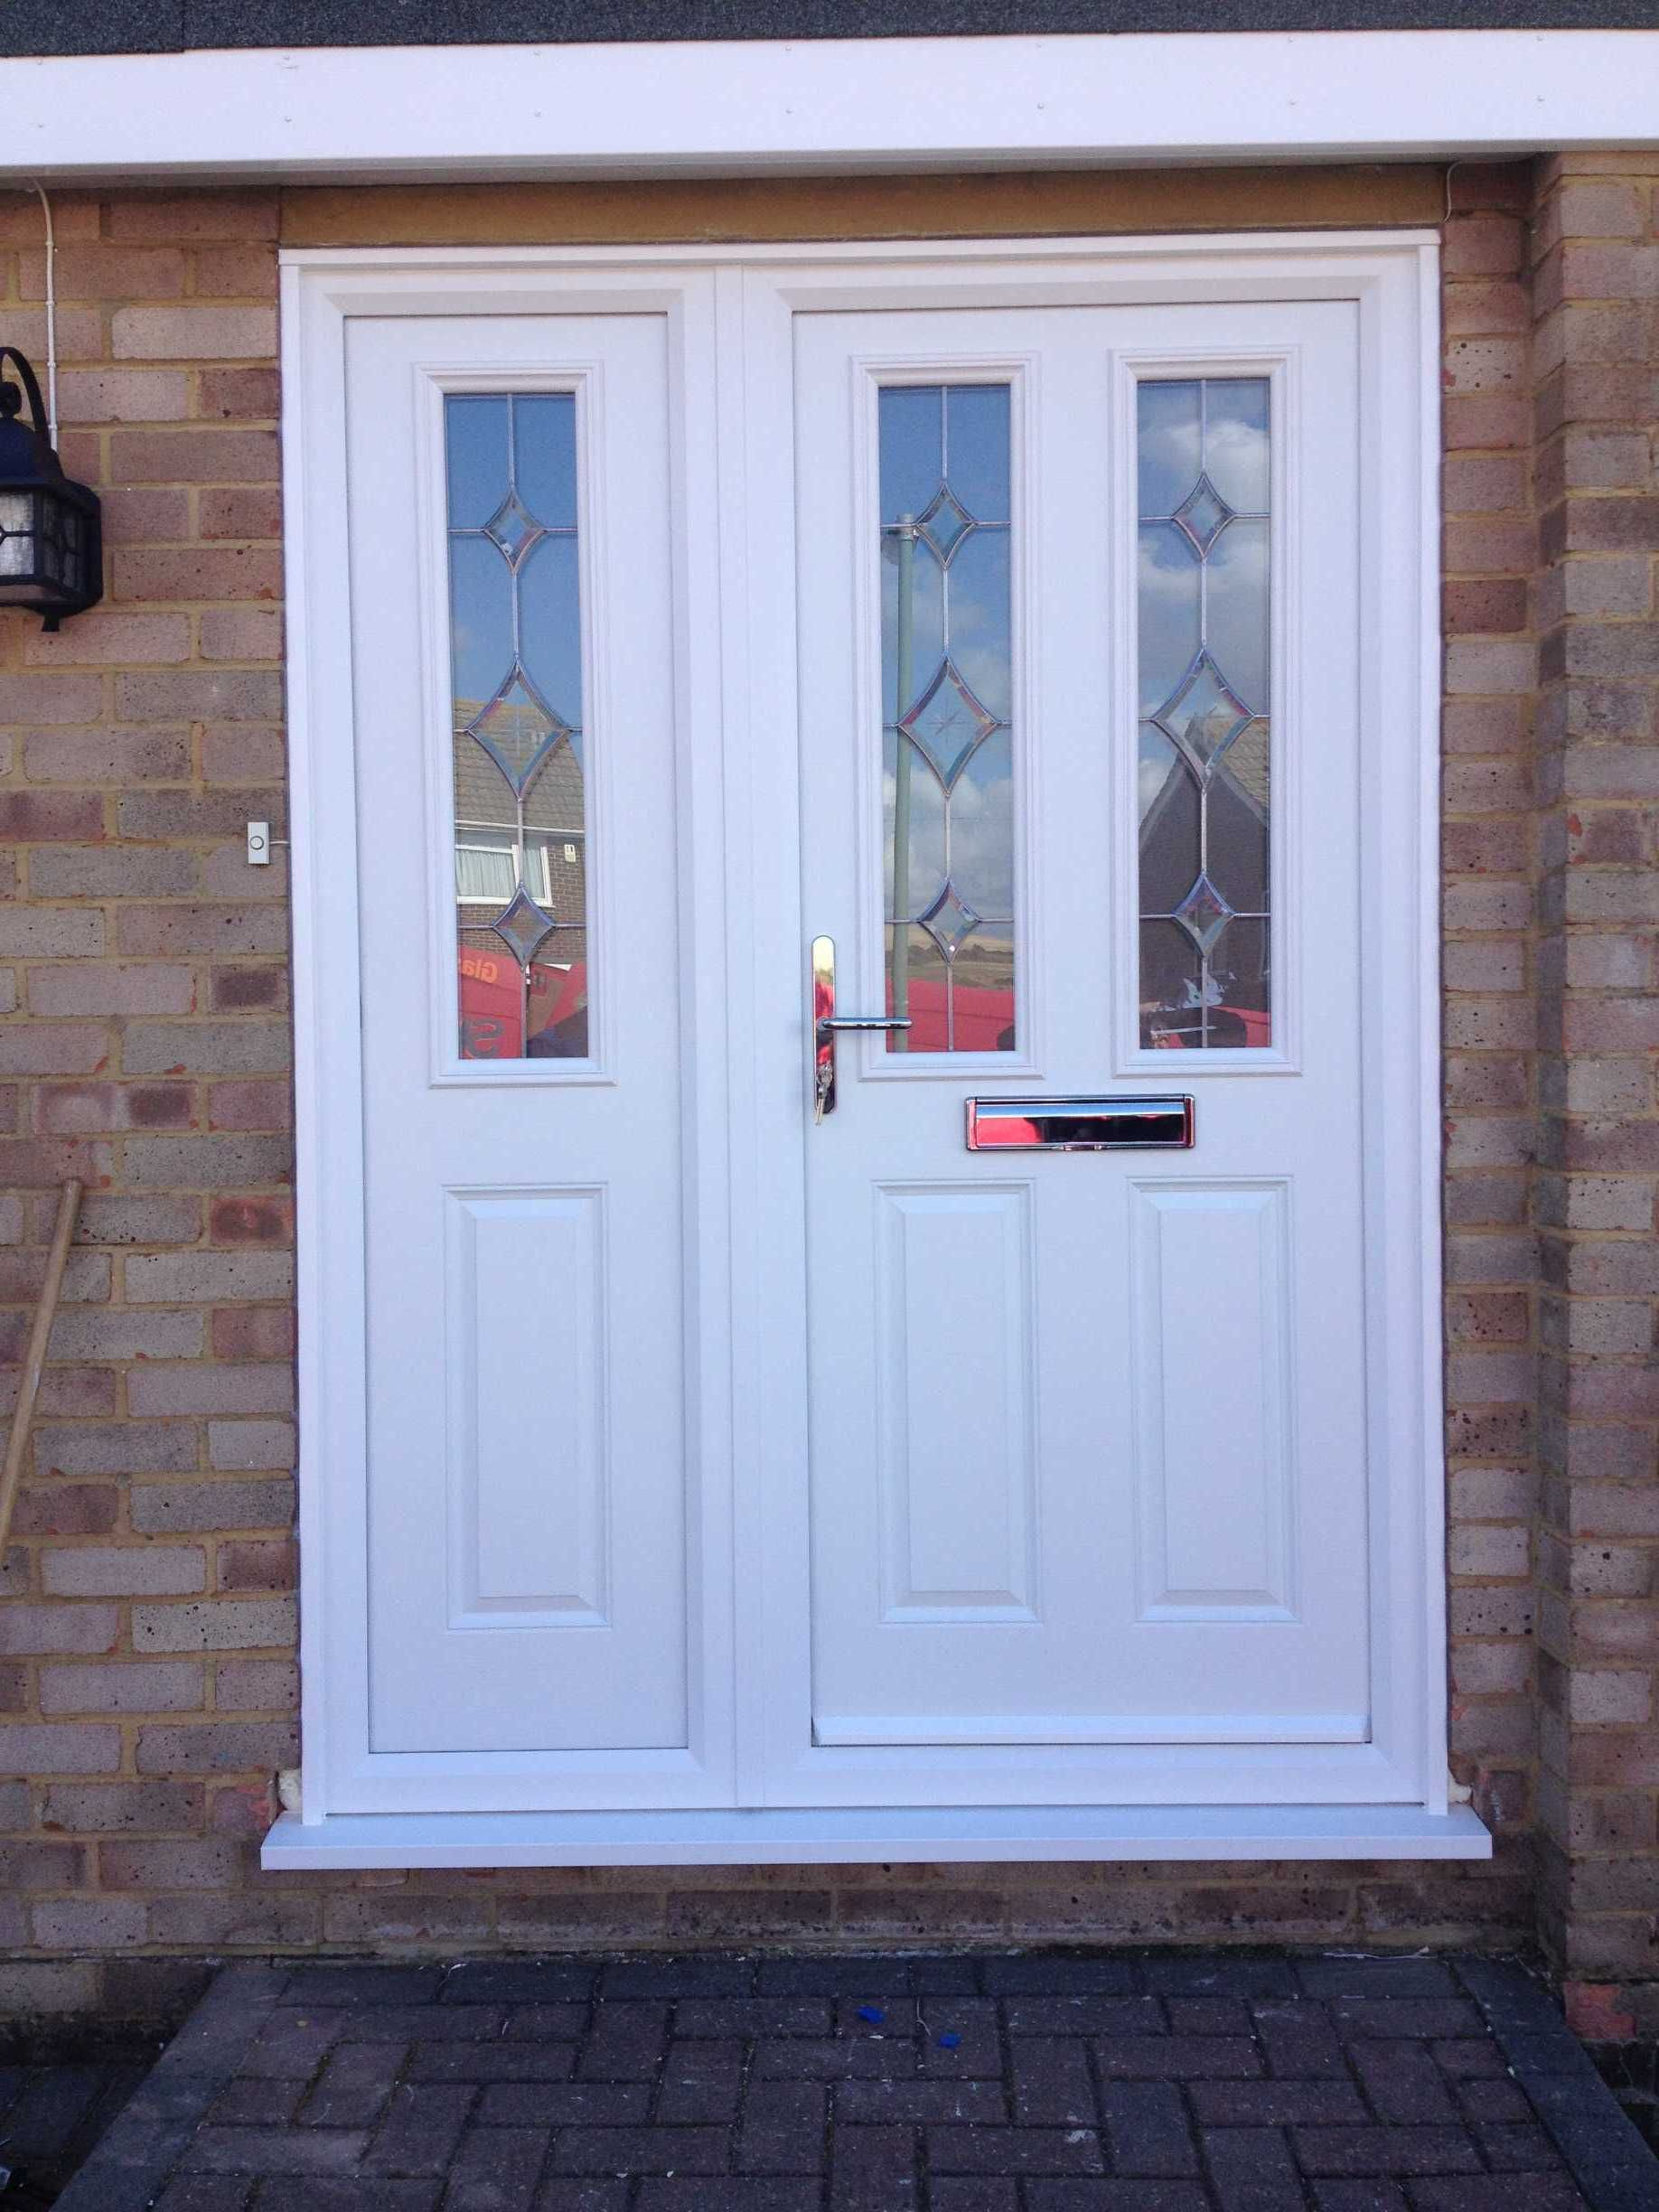 The Front Door Is The First Thing That Visitors And Passersby Notice. If It  Is